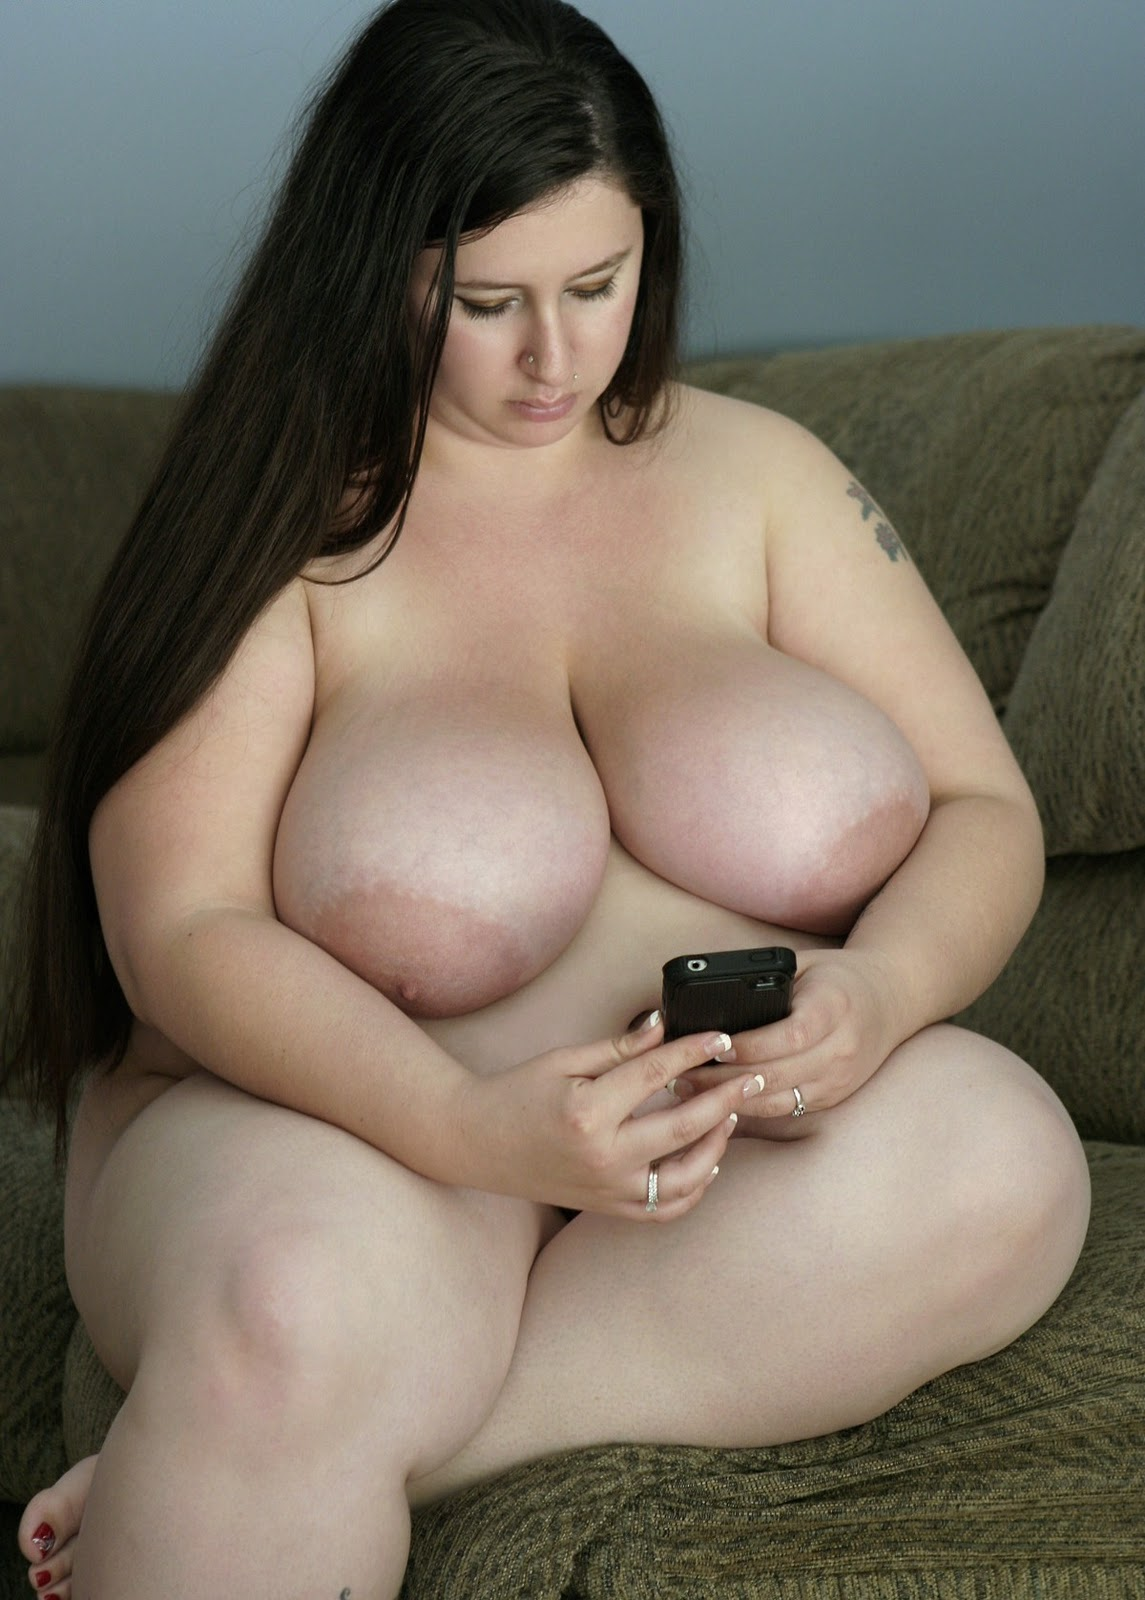 Nude old fat girl images what